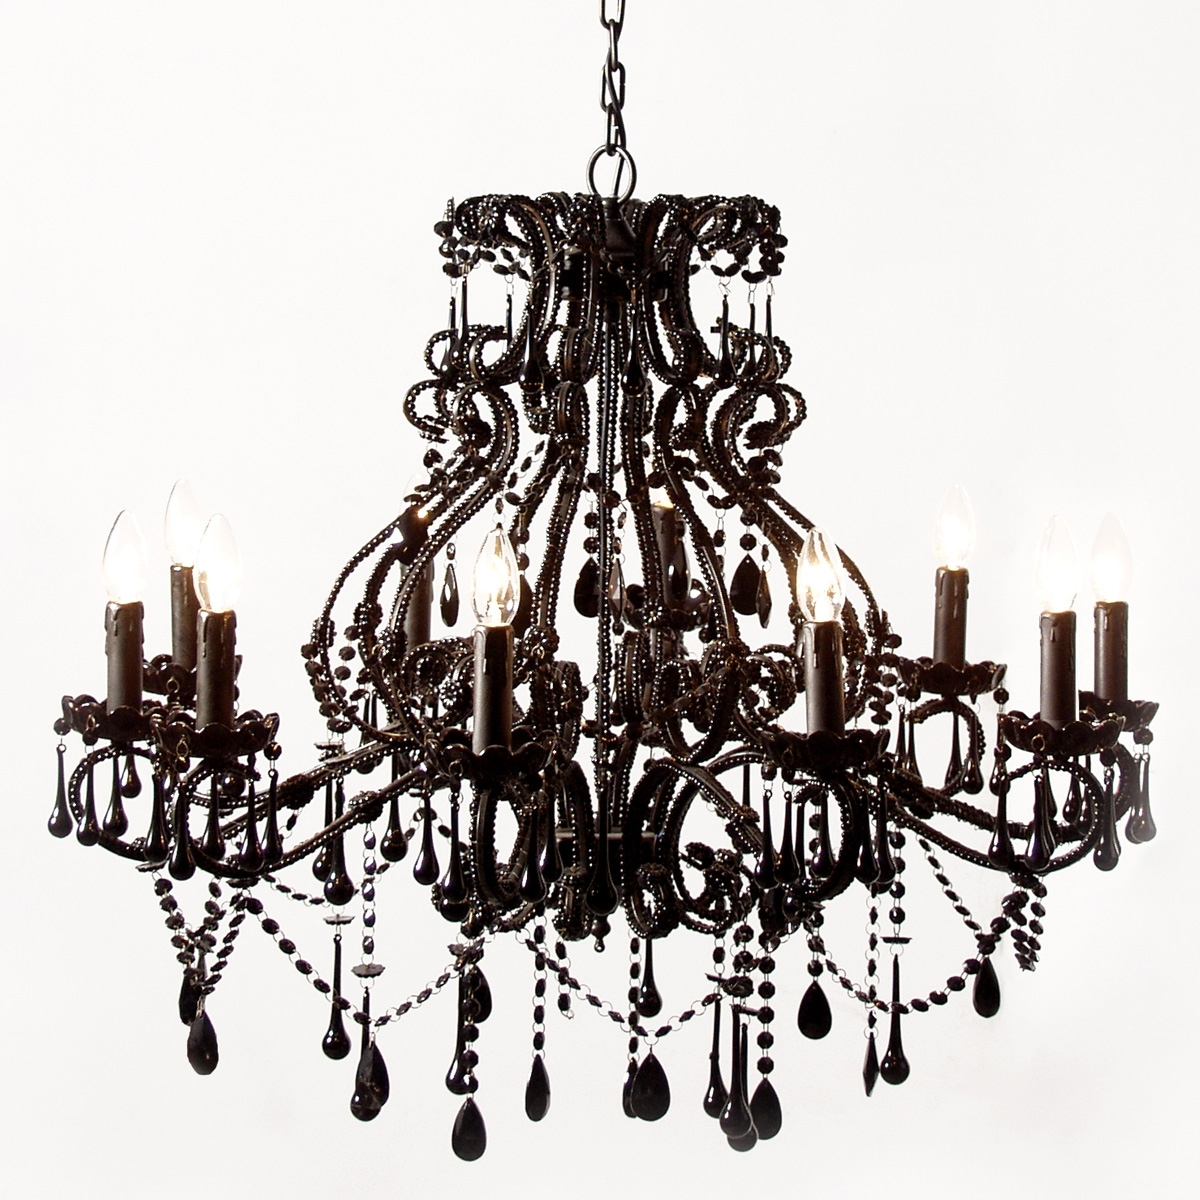 Vintage Black Chandelier for Well-known Vintage Black Chandelier For Bedroom Image 4 – Howiezine